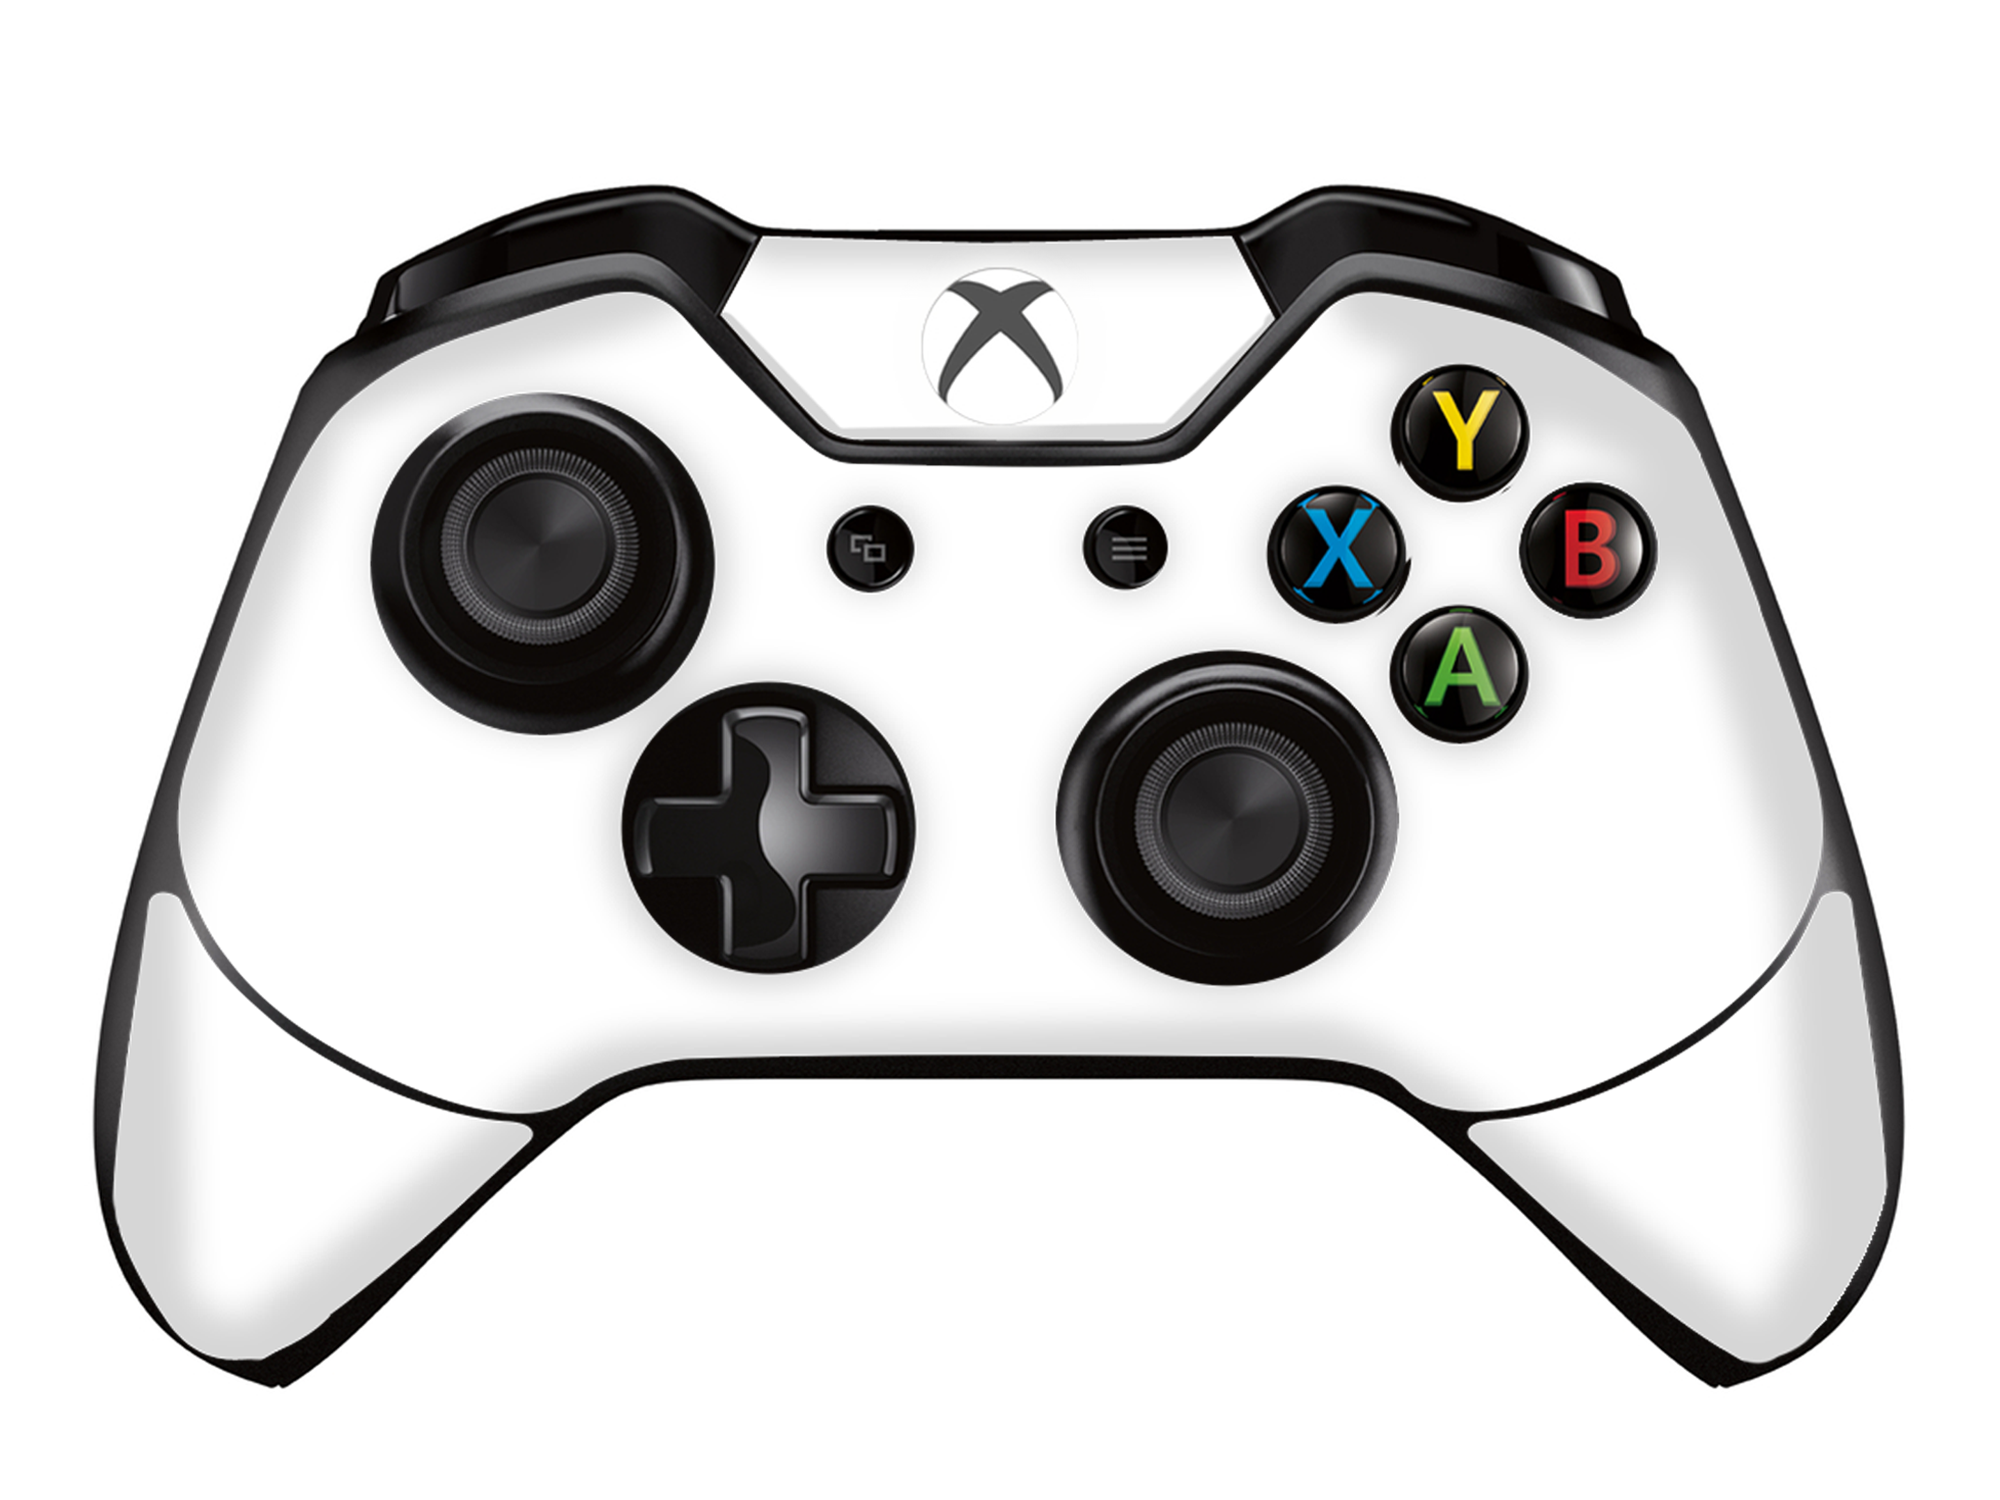 Logo Manette Xbox Png / Starting with x xbox logo history ...